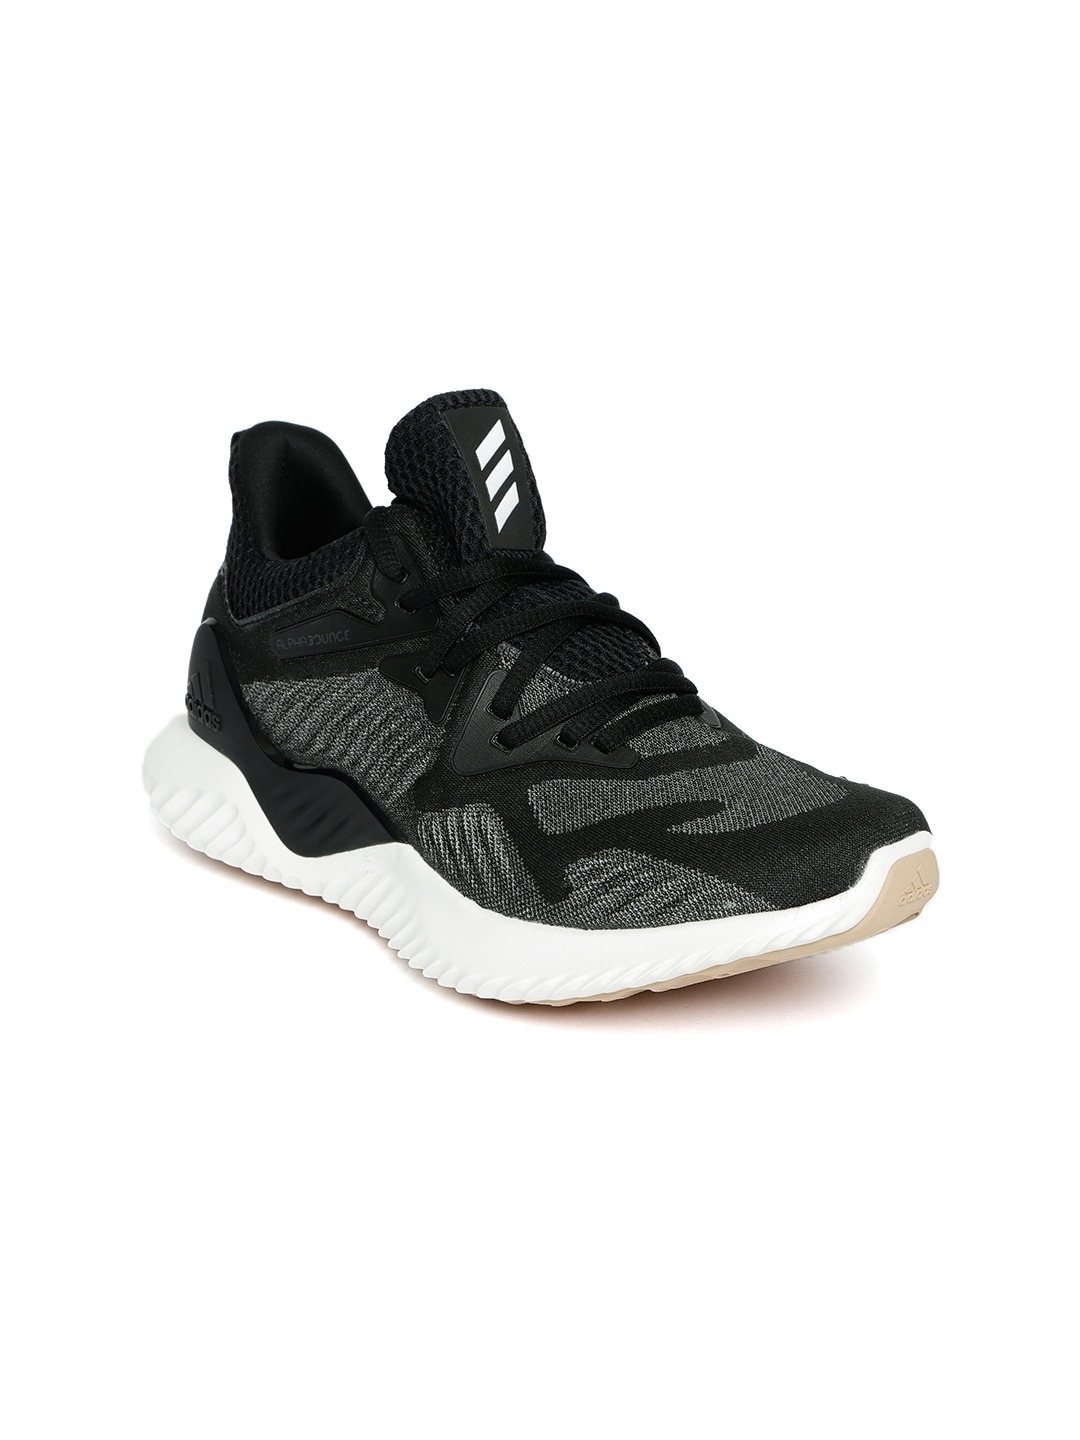 29c25b4ca56eb Buy ADIDAS Women Black   Grey Alphabounce Beyond Running Shoes ...